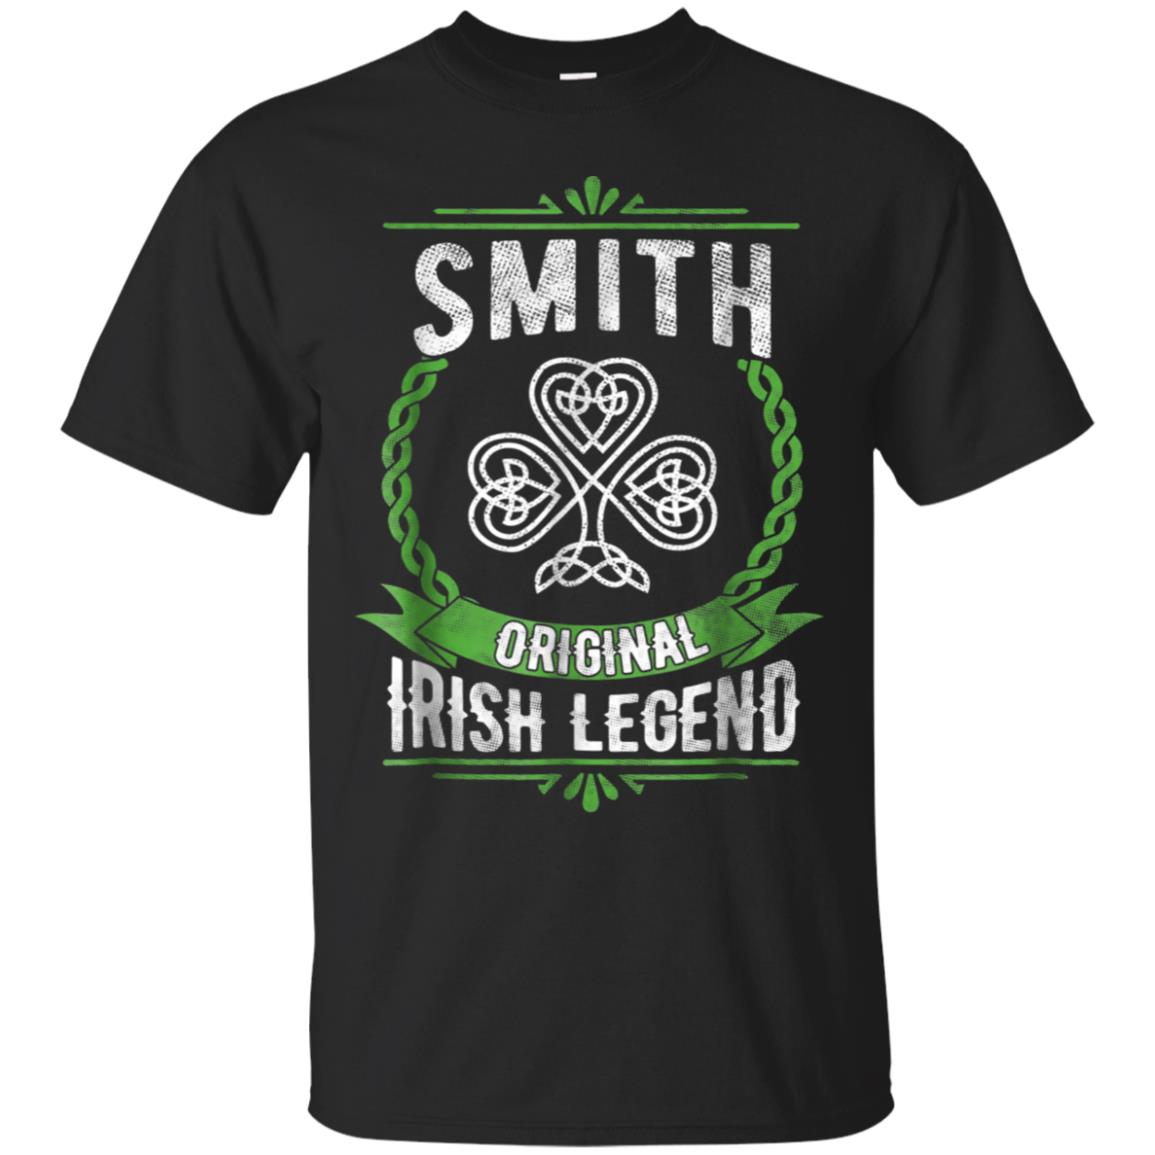 Smith Irish Family Vacation Shirt Name Ireland Legend 99promocode